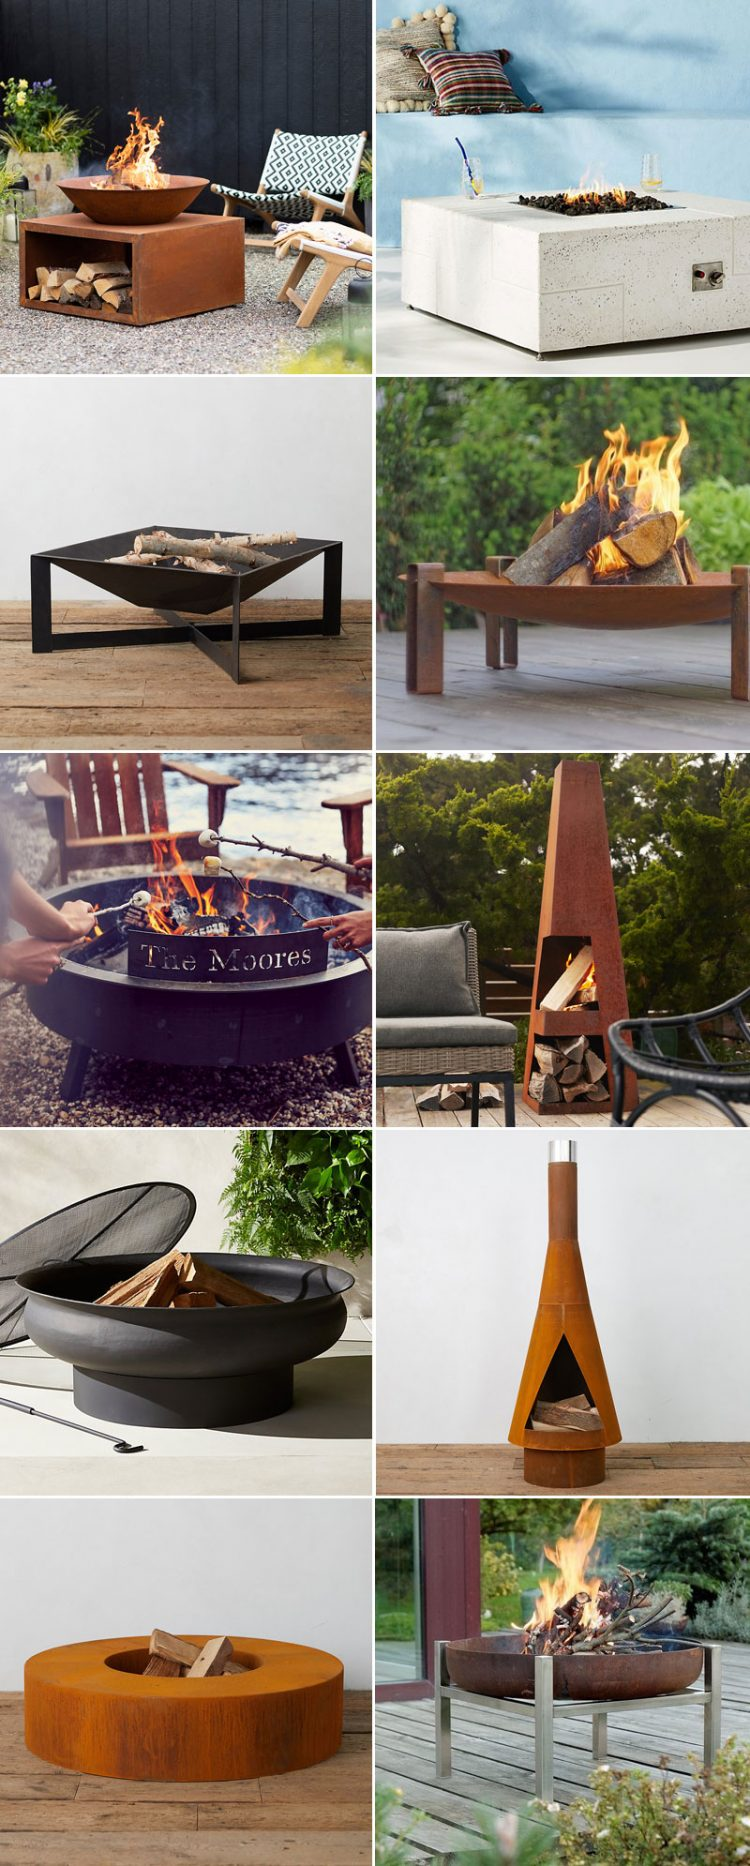 Modern Fire Pits To Complete Your Backyard Oasis! Get your patio, deck, or yard ready for summer entertaining with a modern fire pit. #outdoordecor #outdoorentertaining #firepit #modernfirepit